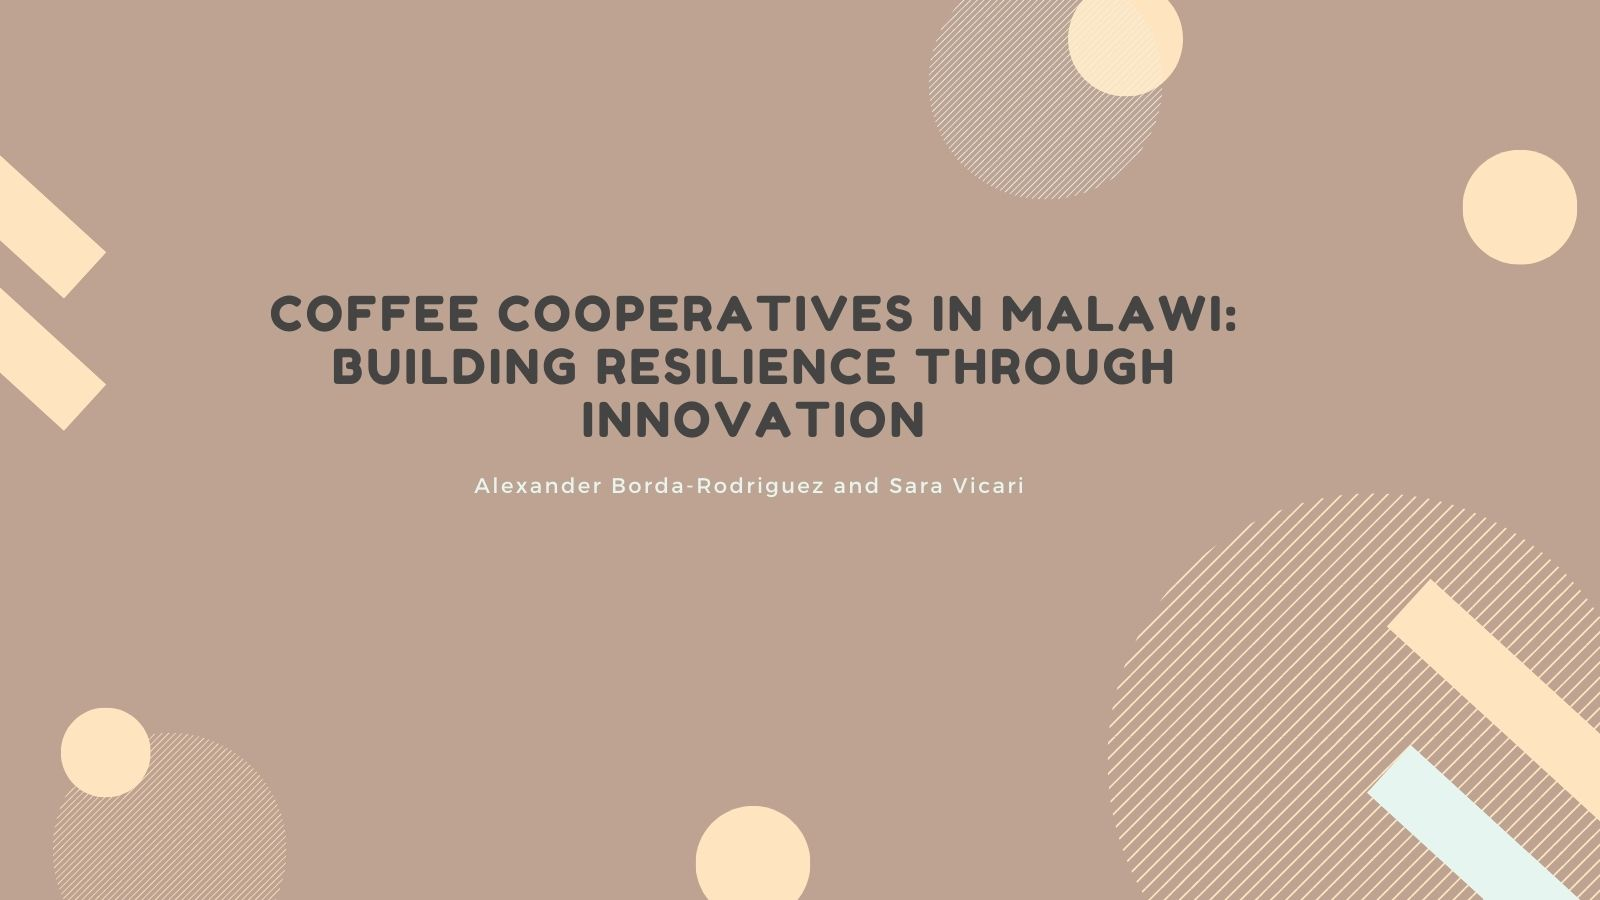 Coffee cooperatives in Malawi: building resilience through innovation